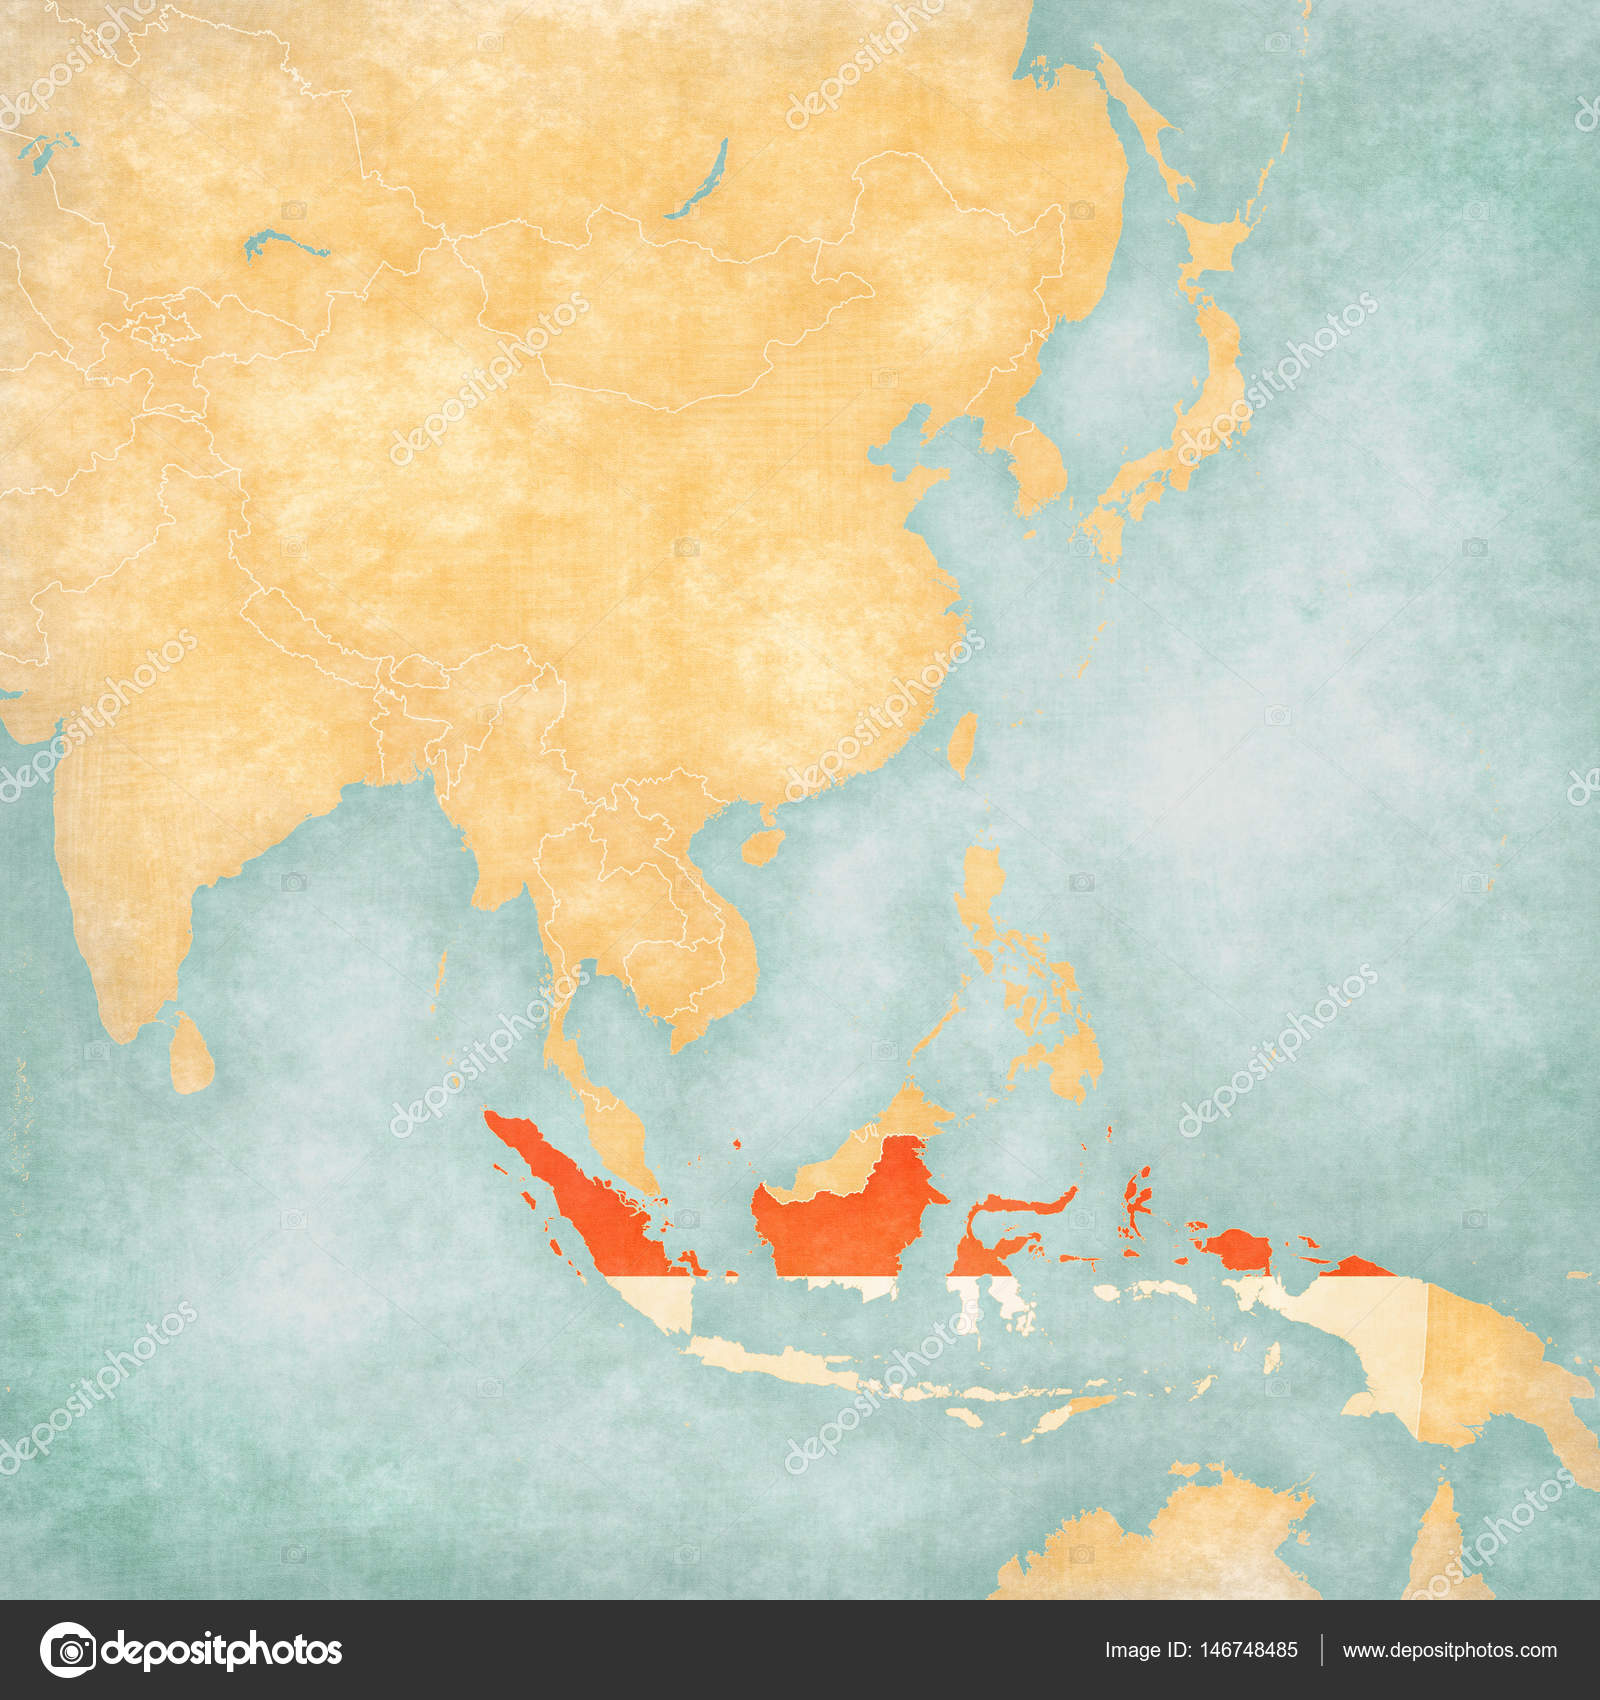 Map Of Asia Indonesia.Map Of East Asia Indonesia Stock Photo C Tindo 146748485